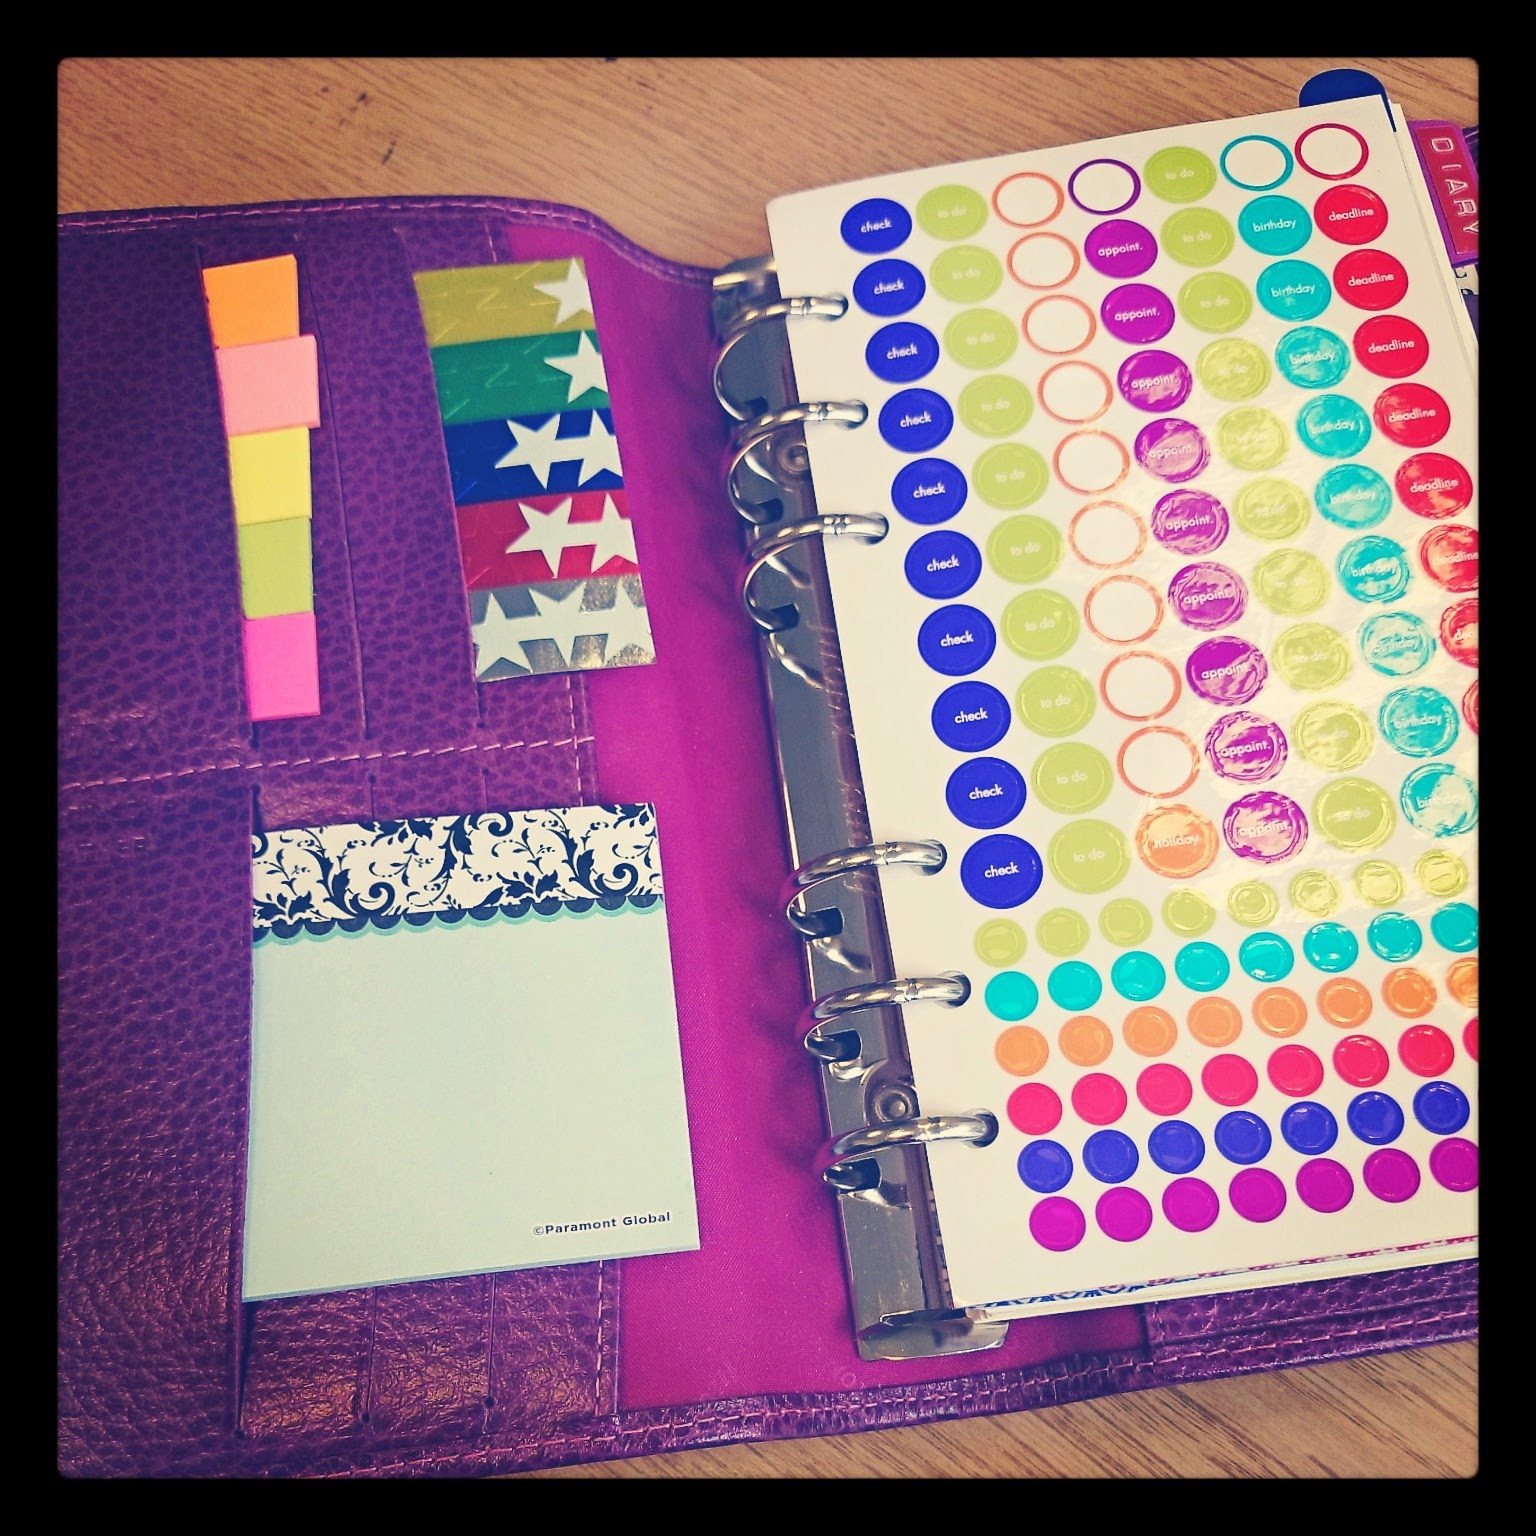 filofax personal finsbury week 35 decoration washi tape stickers studio l2e stamp sets list it plan it blog post planning planner